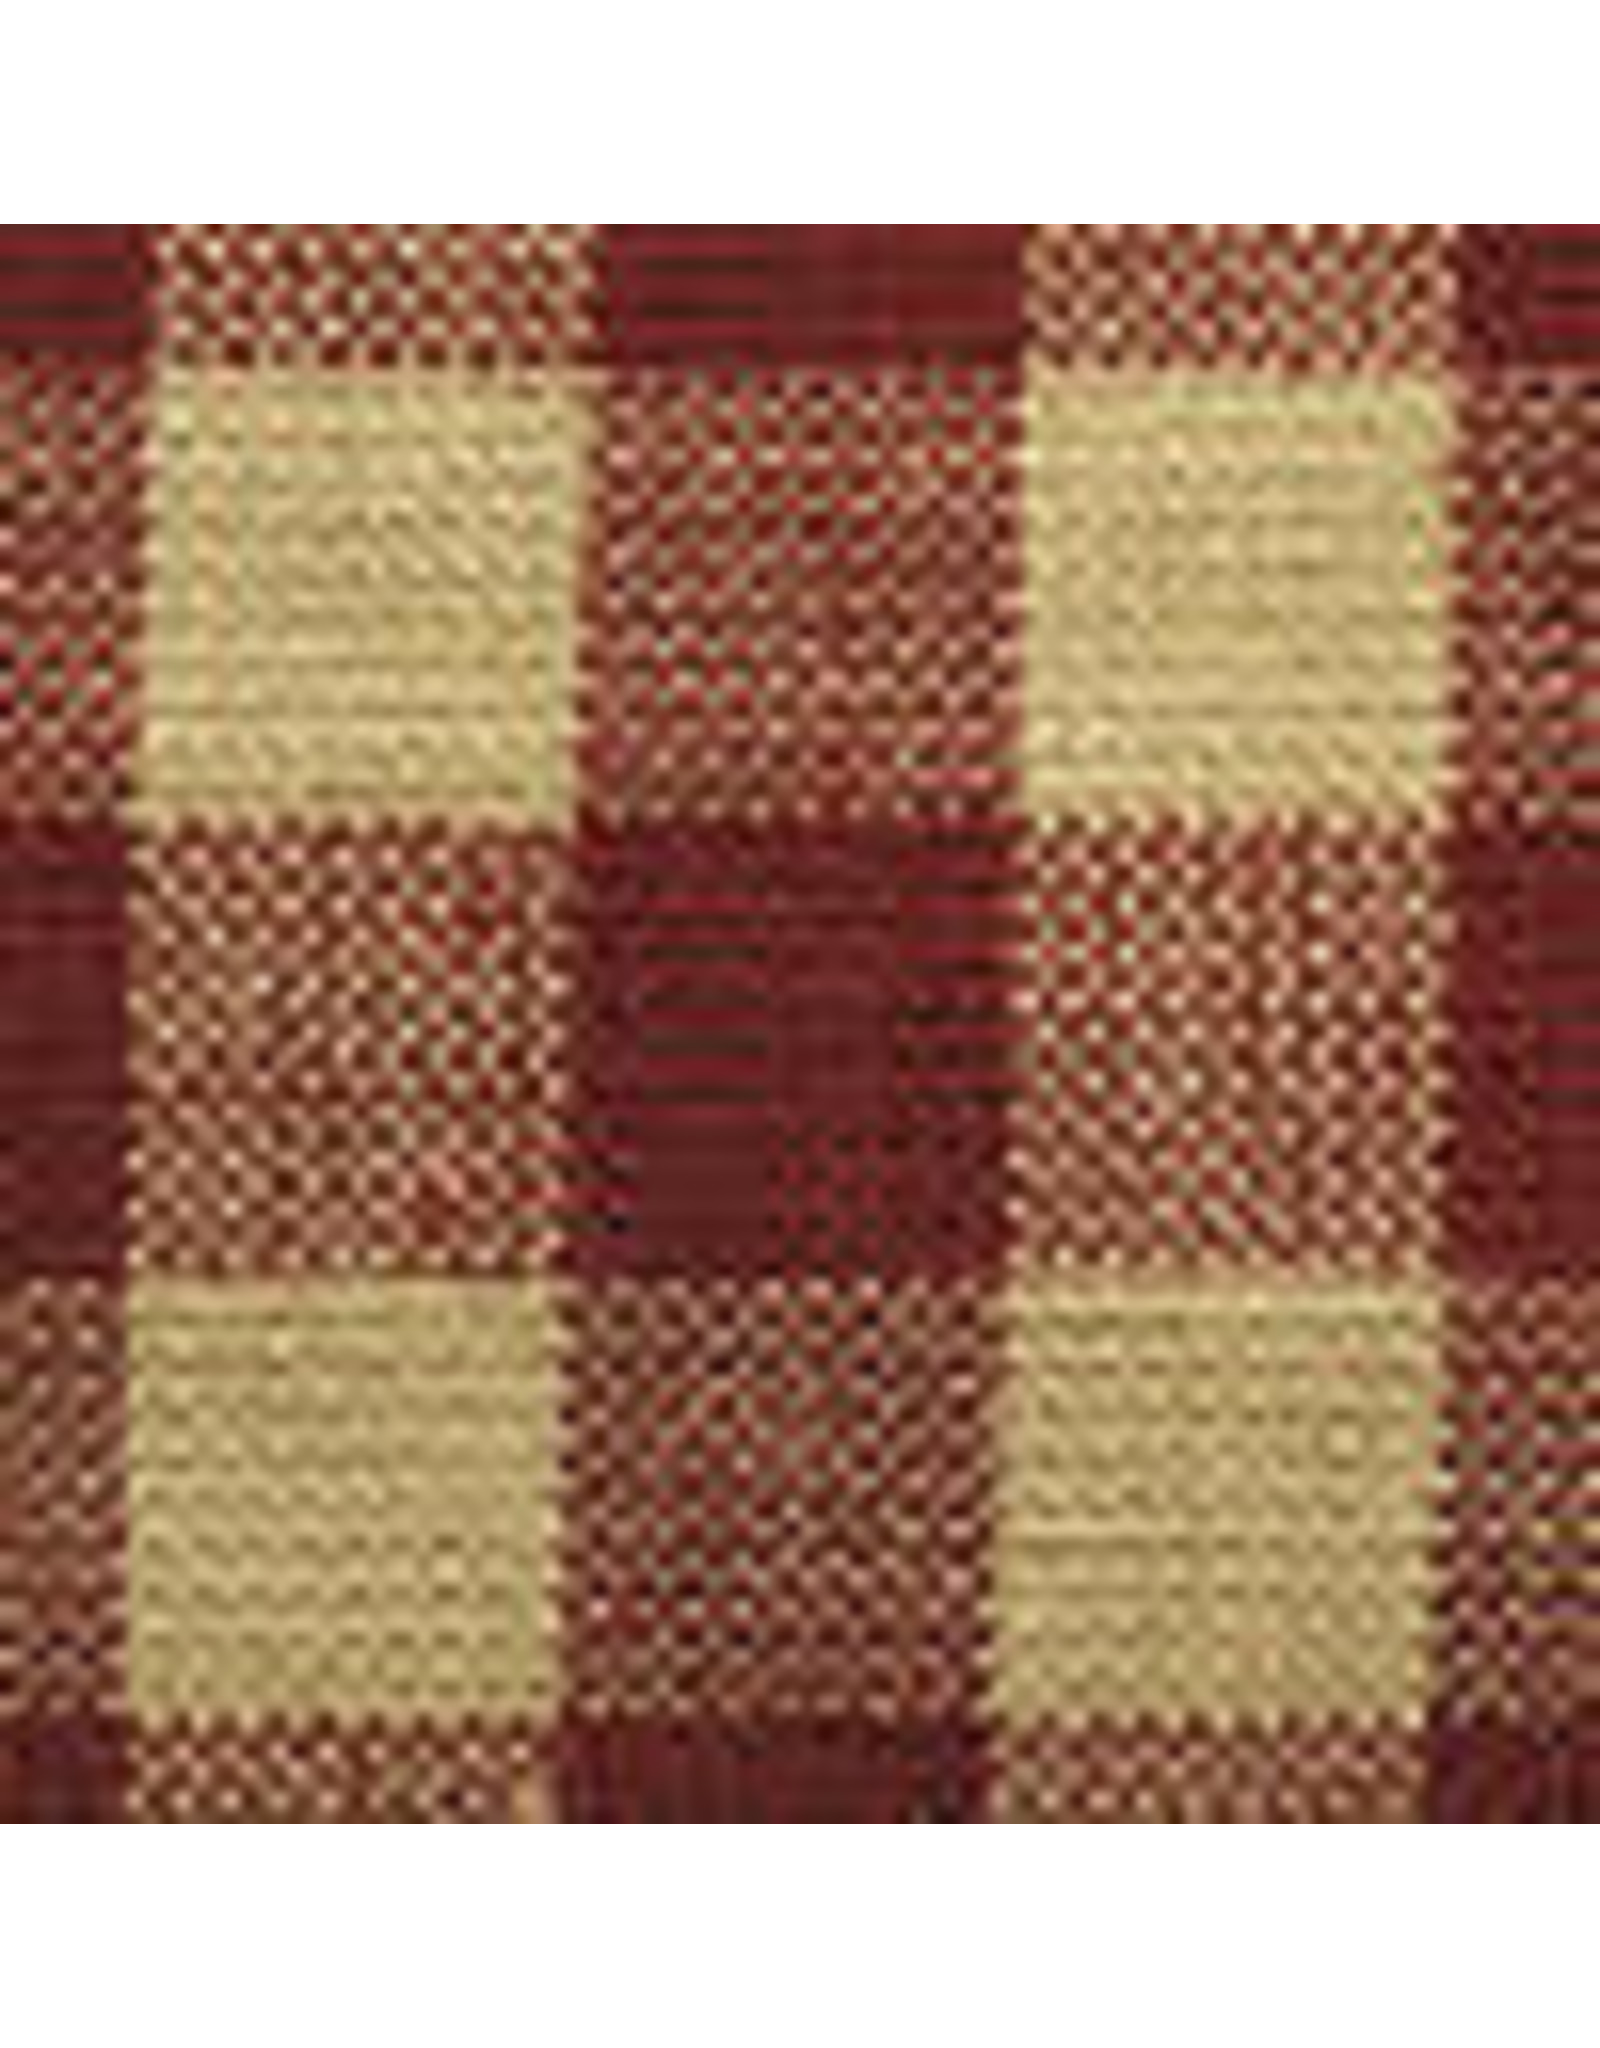 Yd. Red and Tan Small Check #32